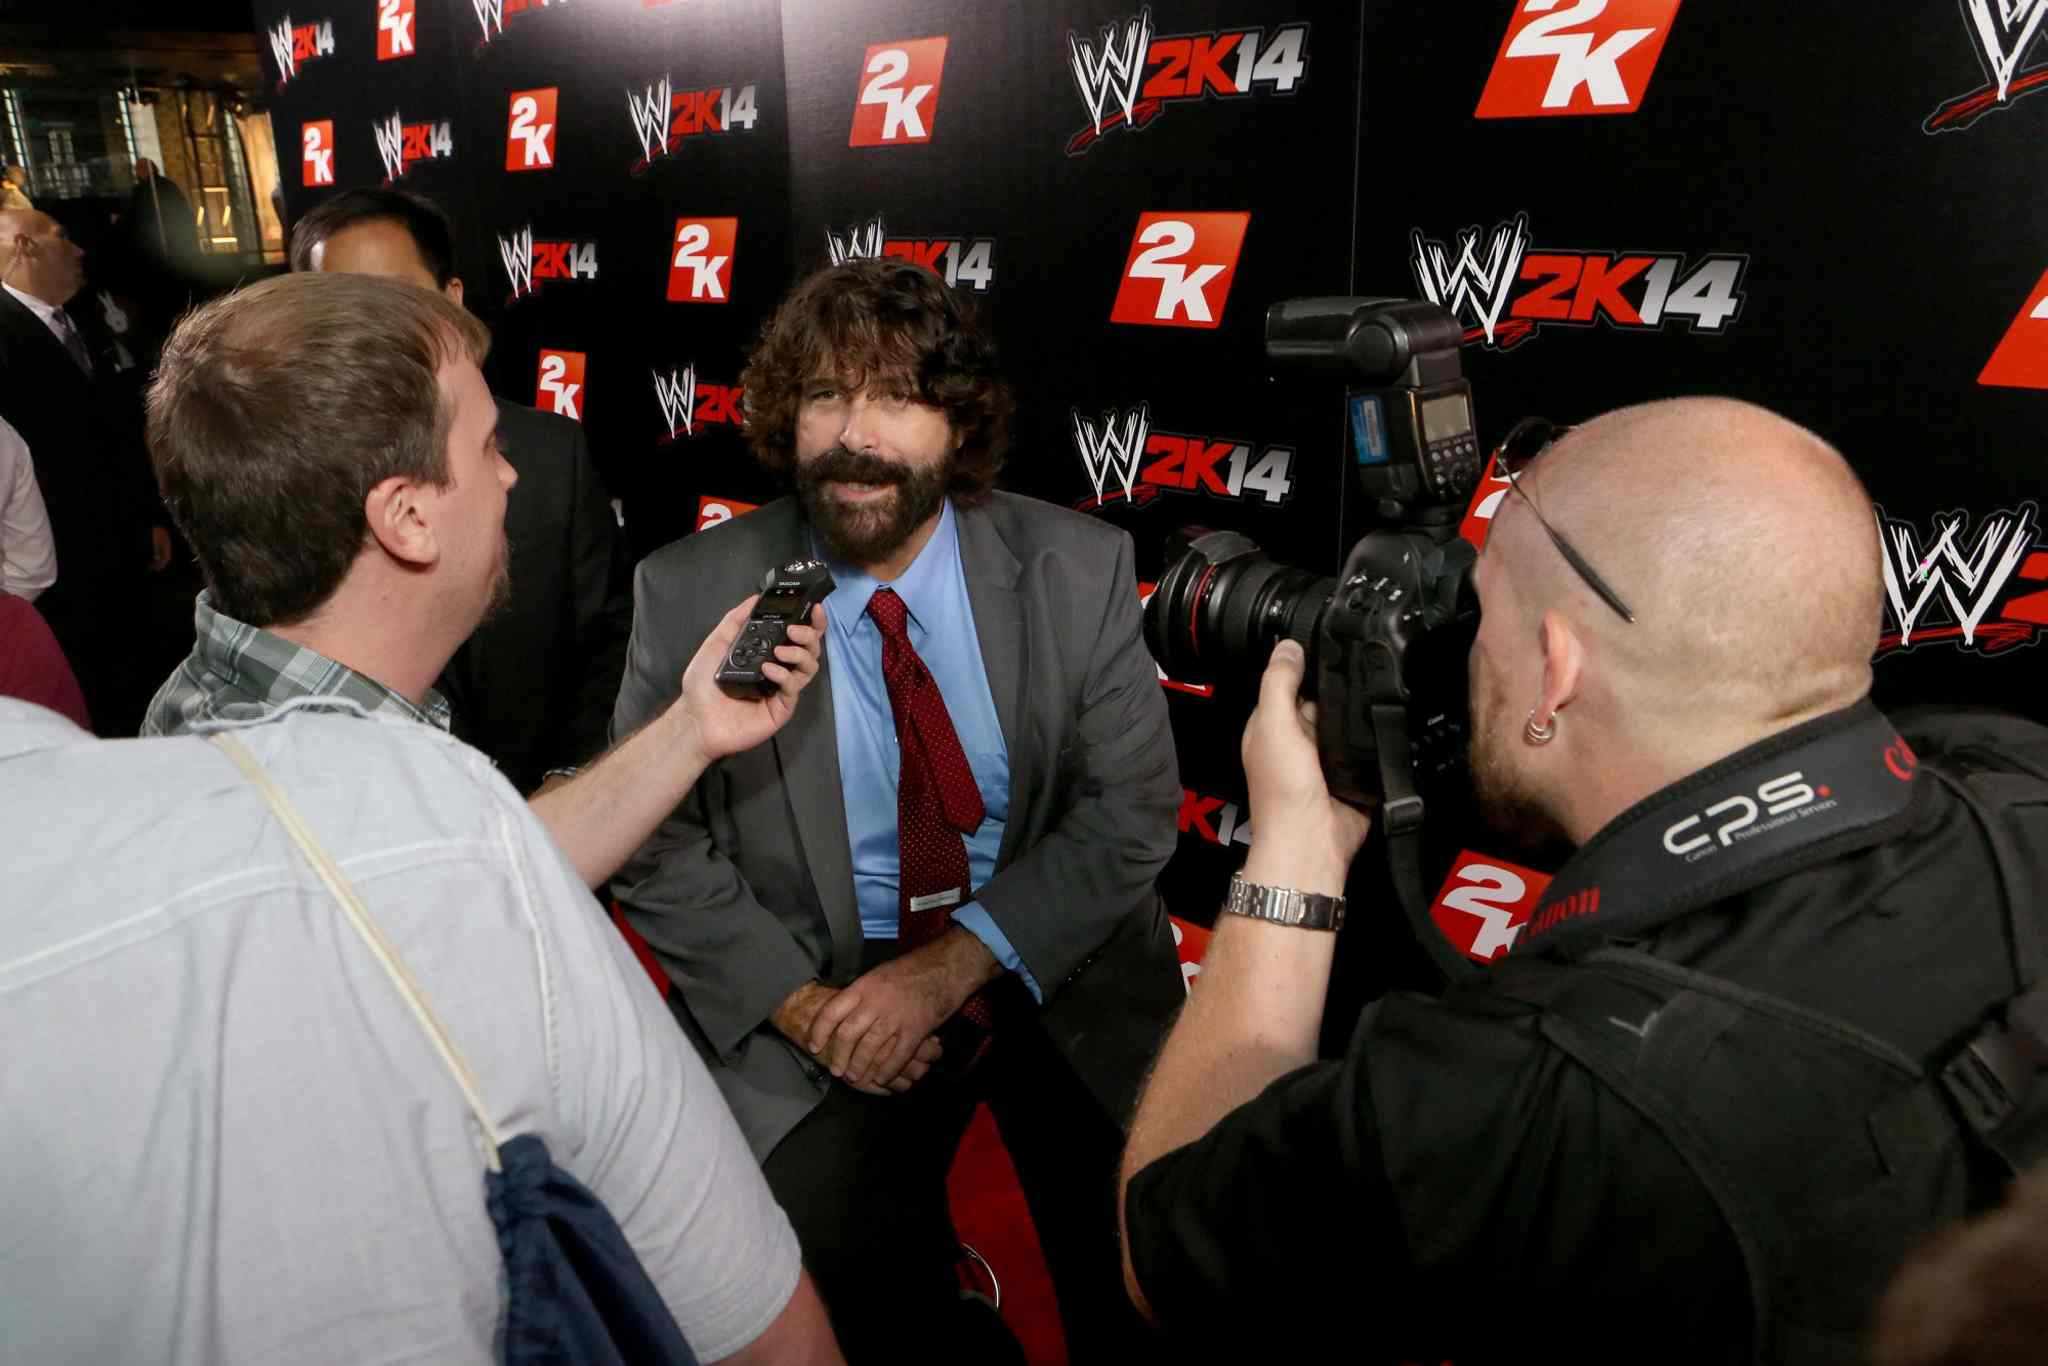 WWE Hall of Famer Mick Foley talks with media at the WWE 2K14 press event in August 2013.